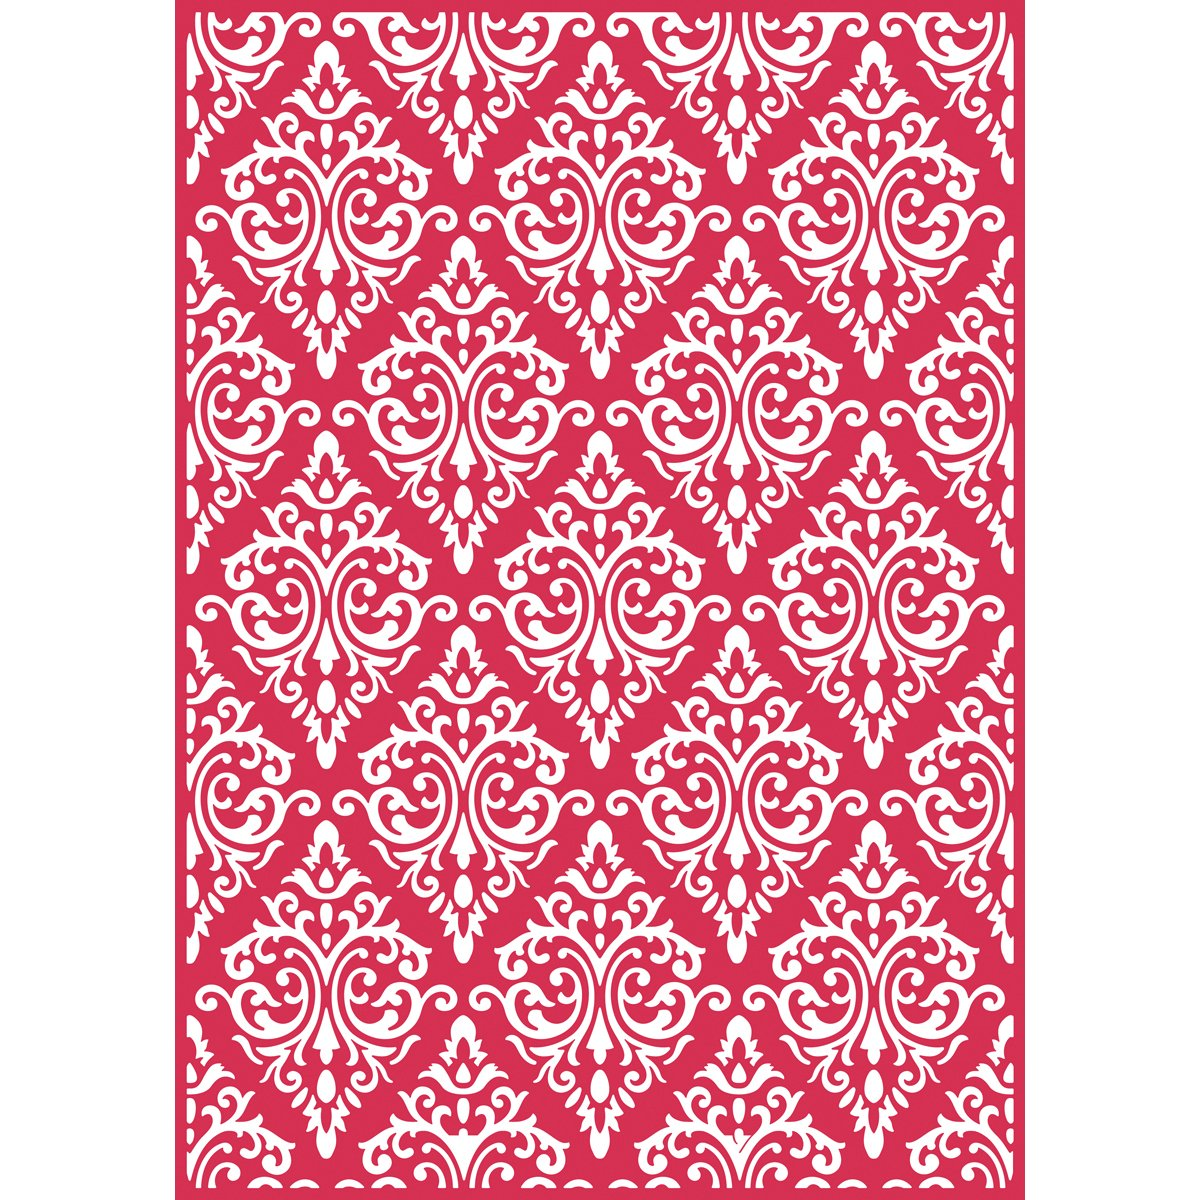 Craftwell Usa Teresa Collins Embossing Folder, Beautiful Brocade EF-BBR-051TU